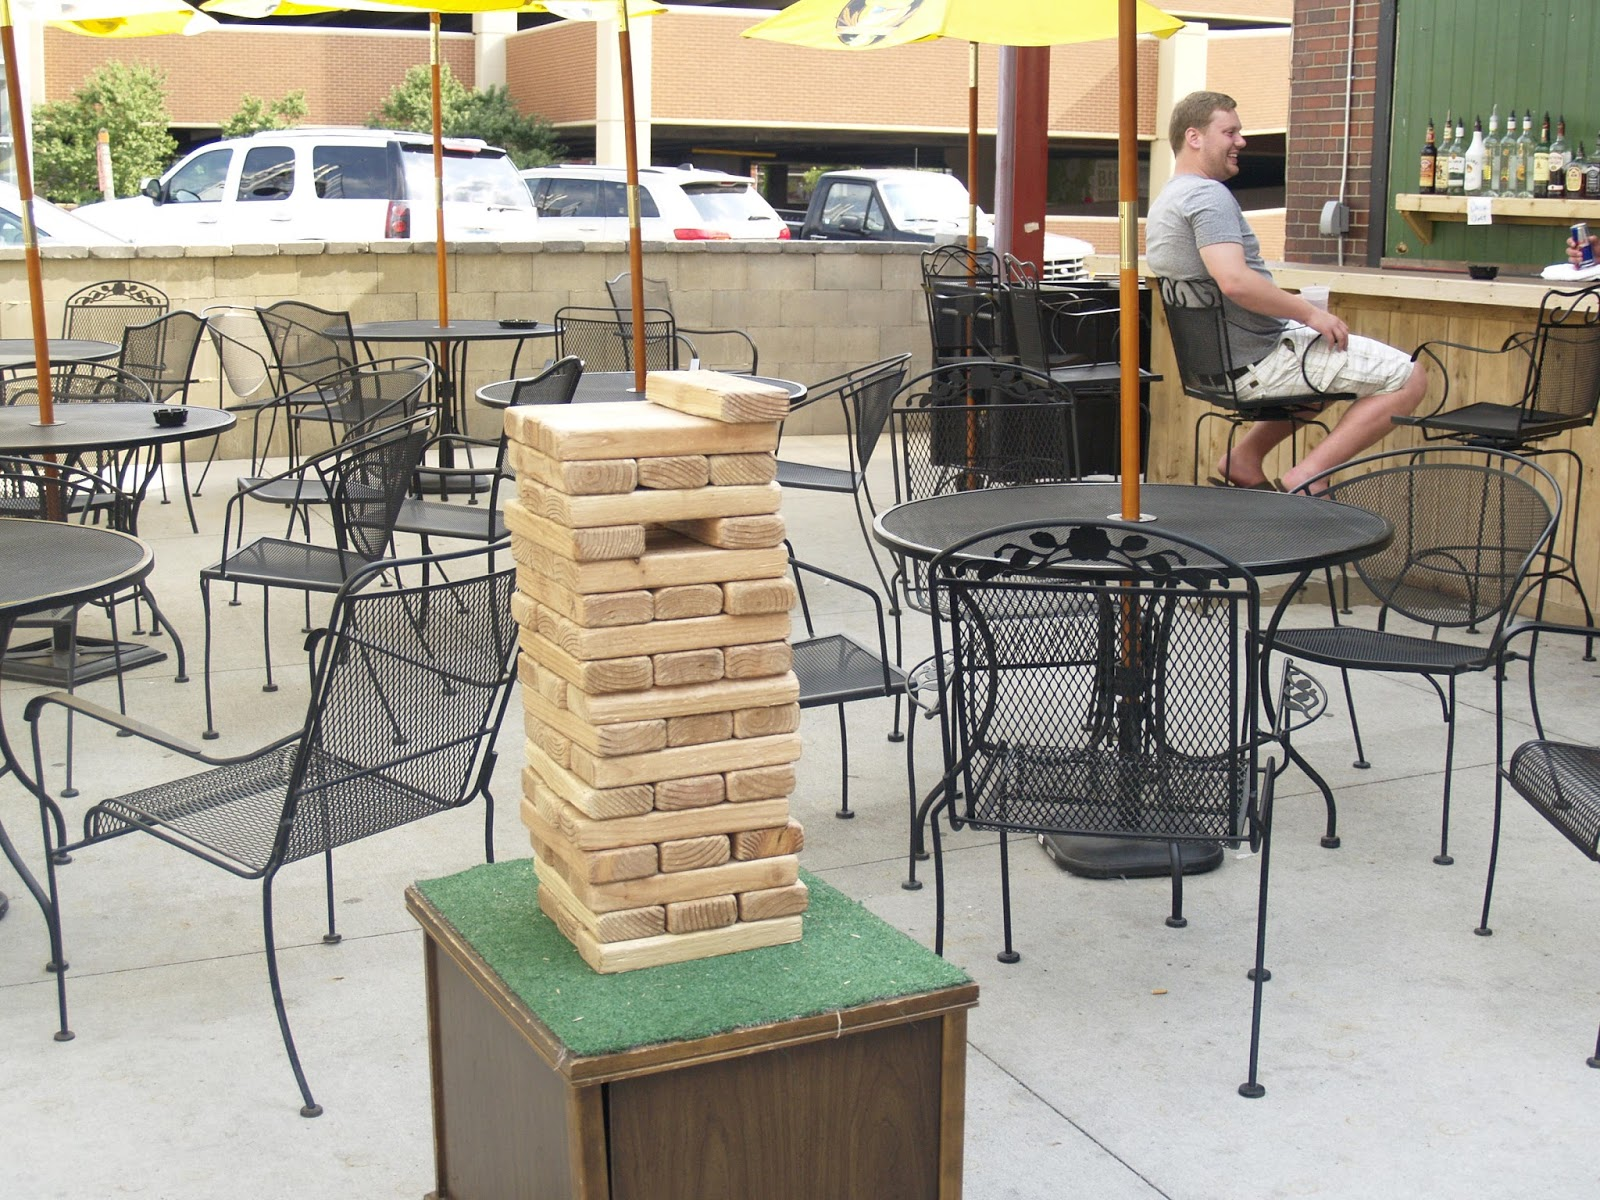 10 patios to enjoy this summer in Des Moines